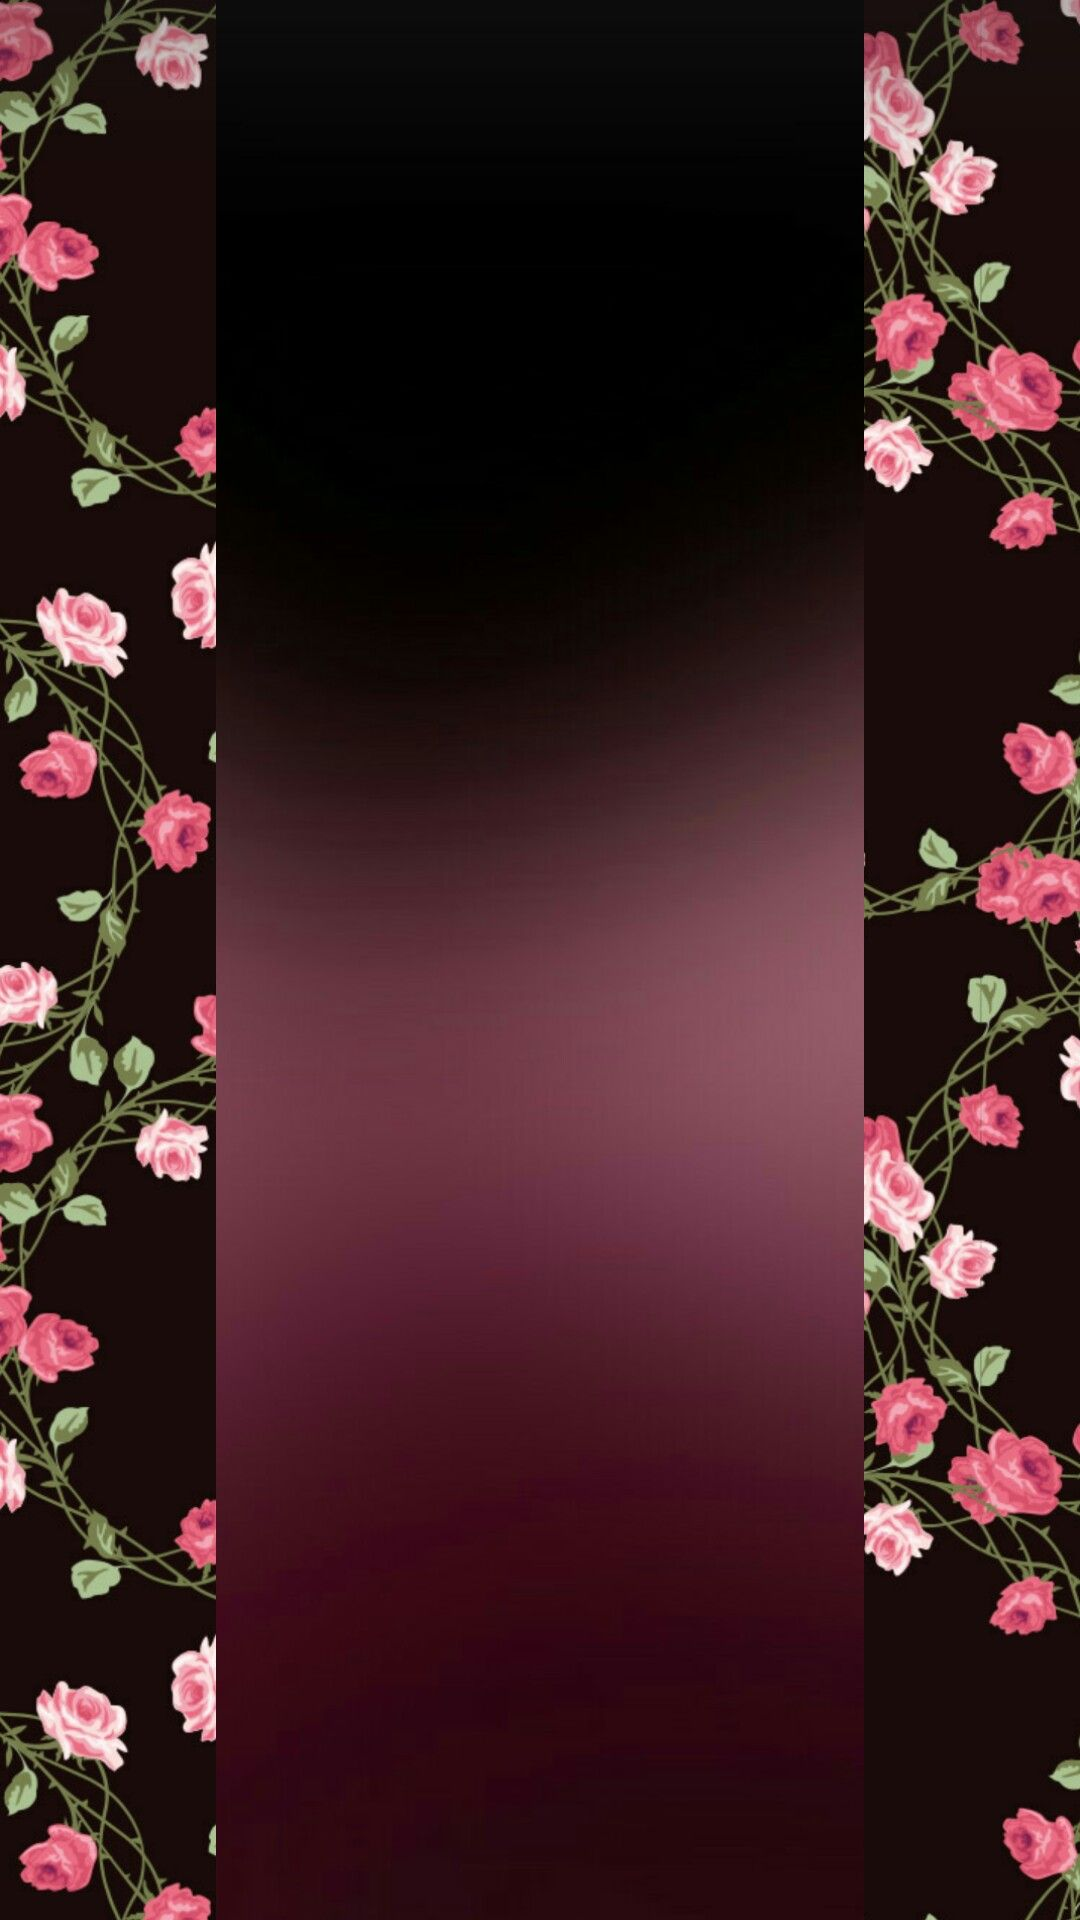 Black and pink flowers wallpapers for phone in 2019 Flowery 1080x1920